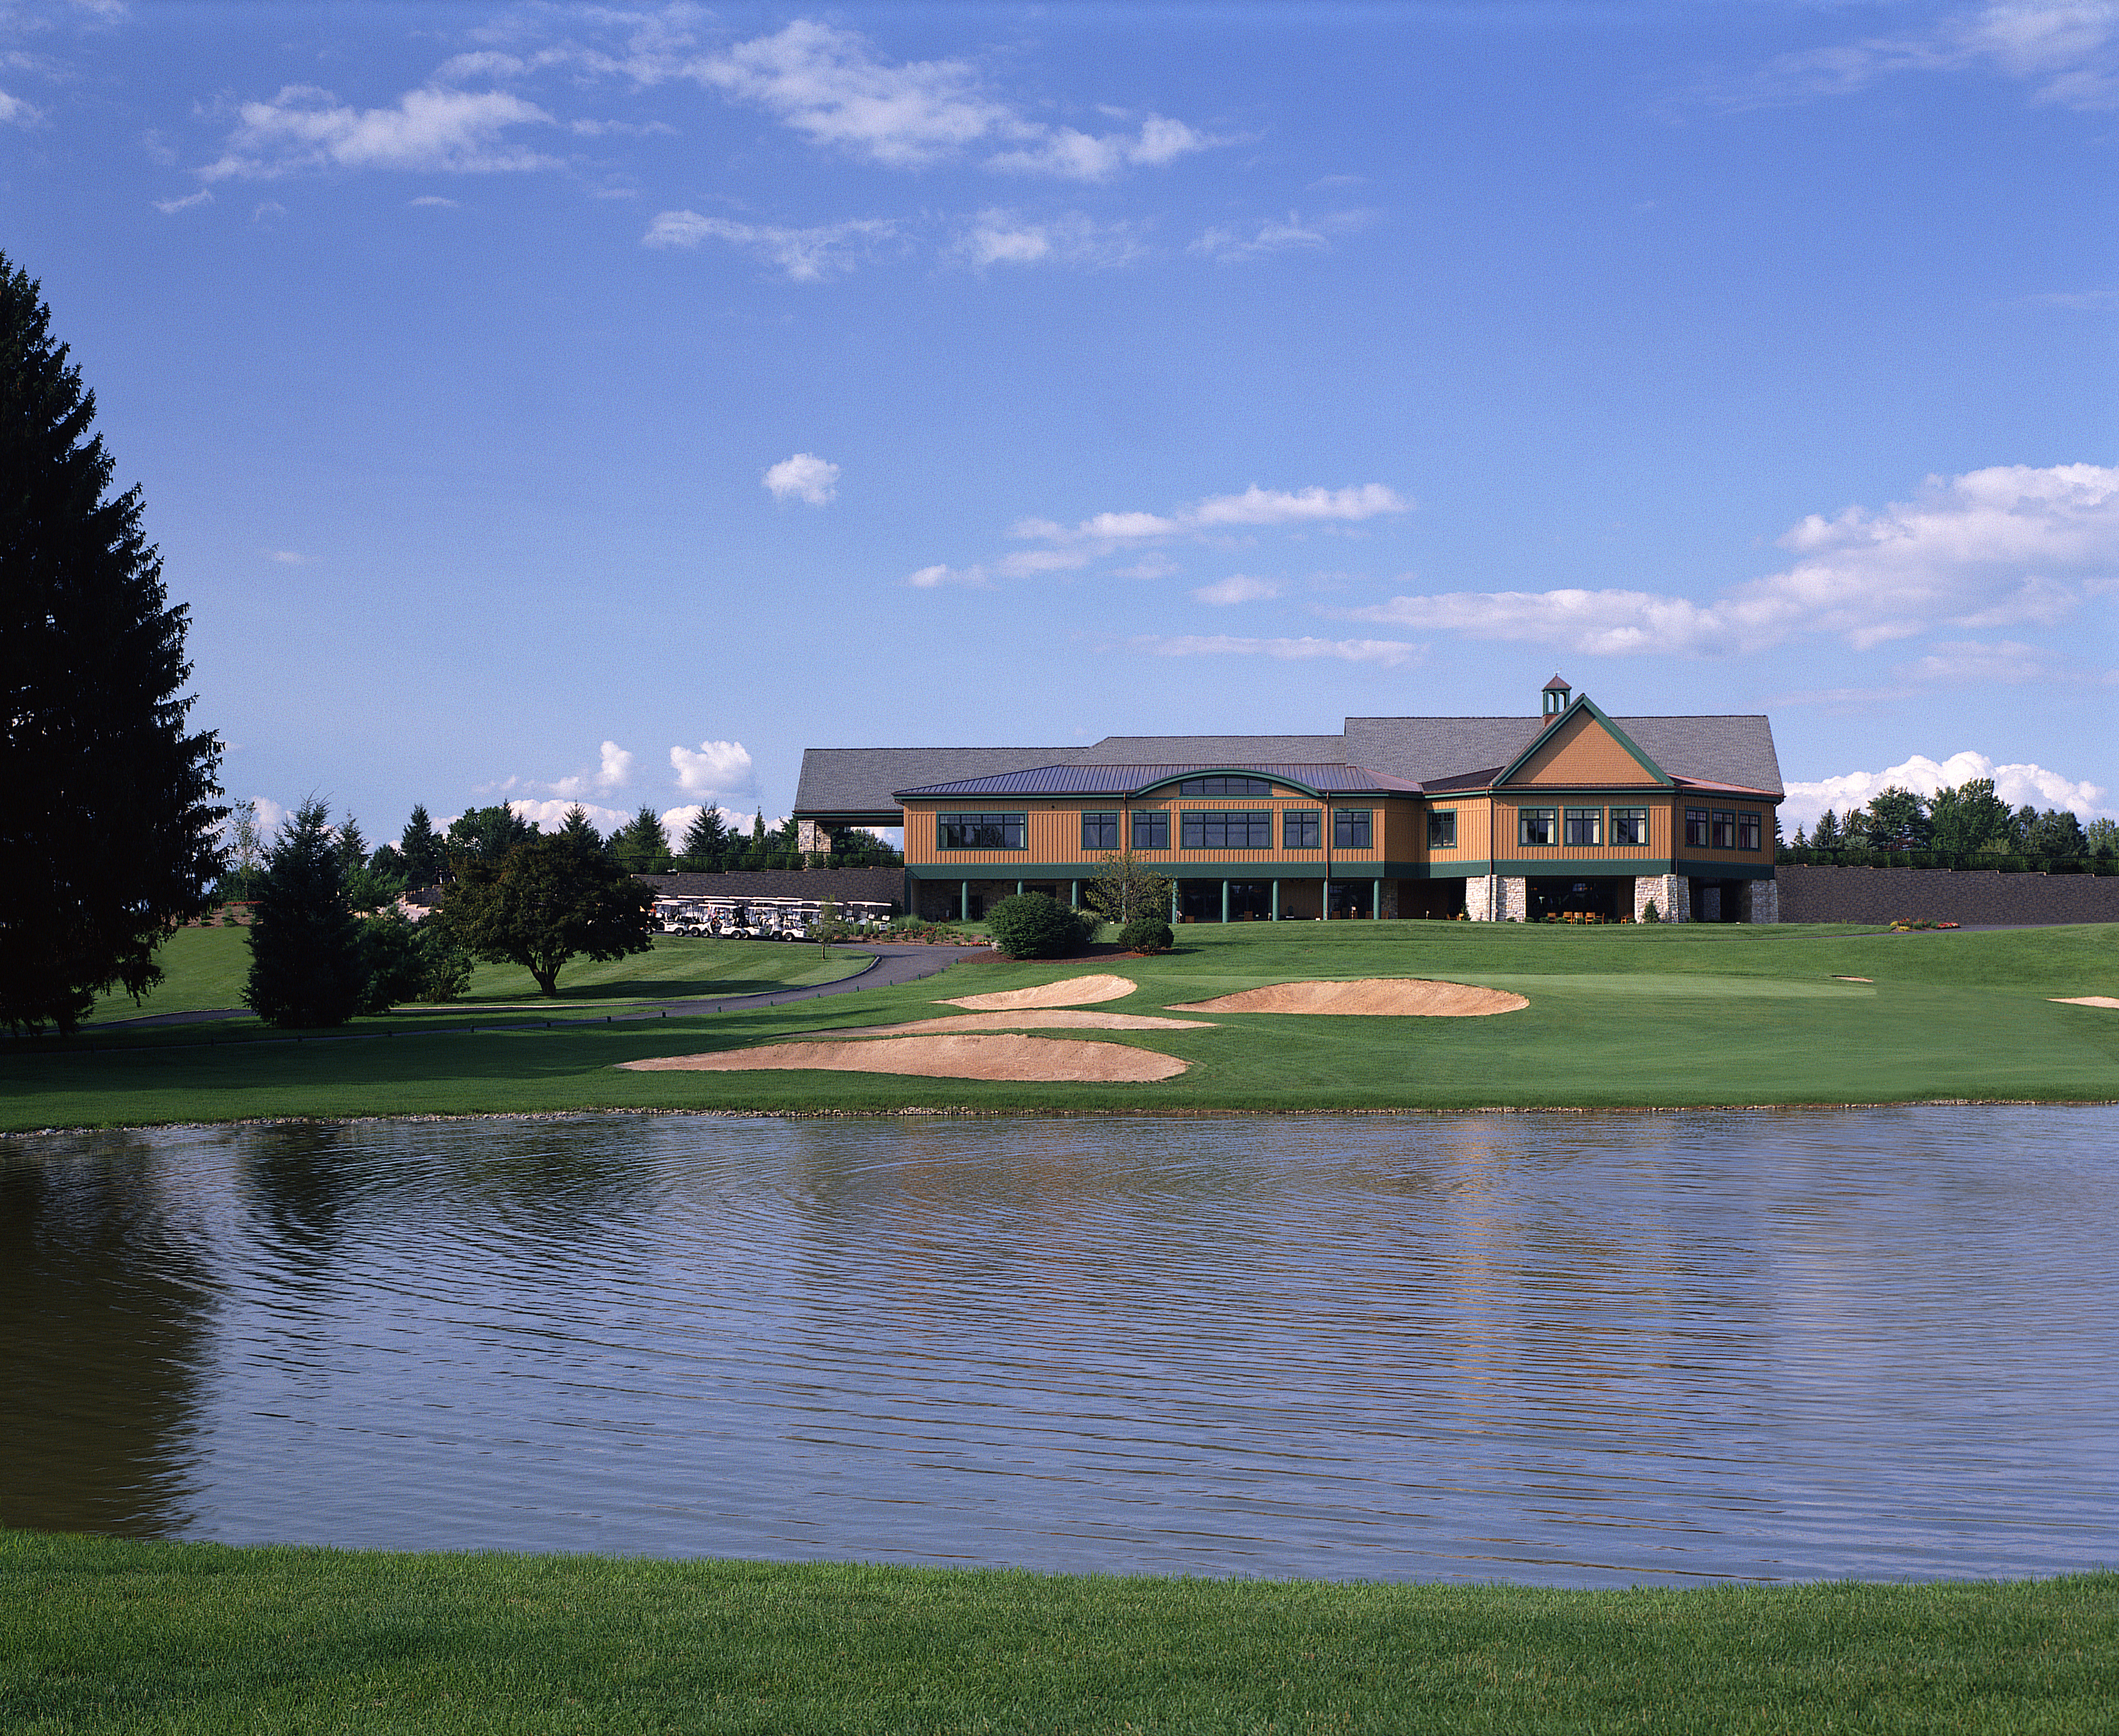 The Clubhouse at the Hershey Country Club is a great place to relax, unwind and have a great dinner after a round of golf! #SweetestMoms